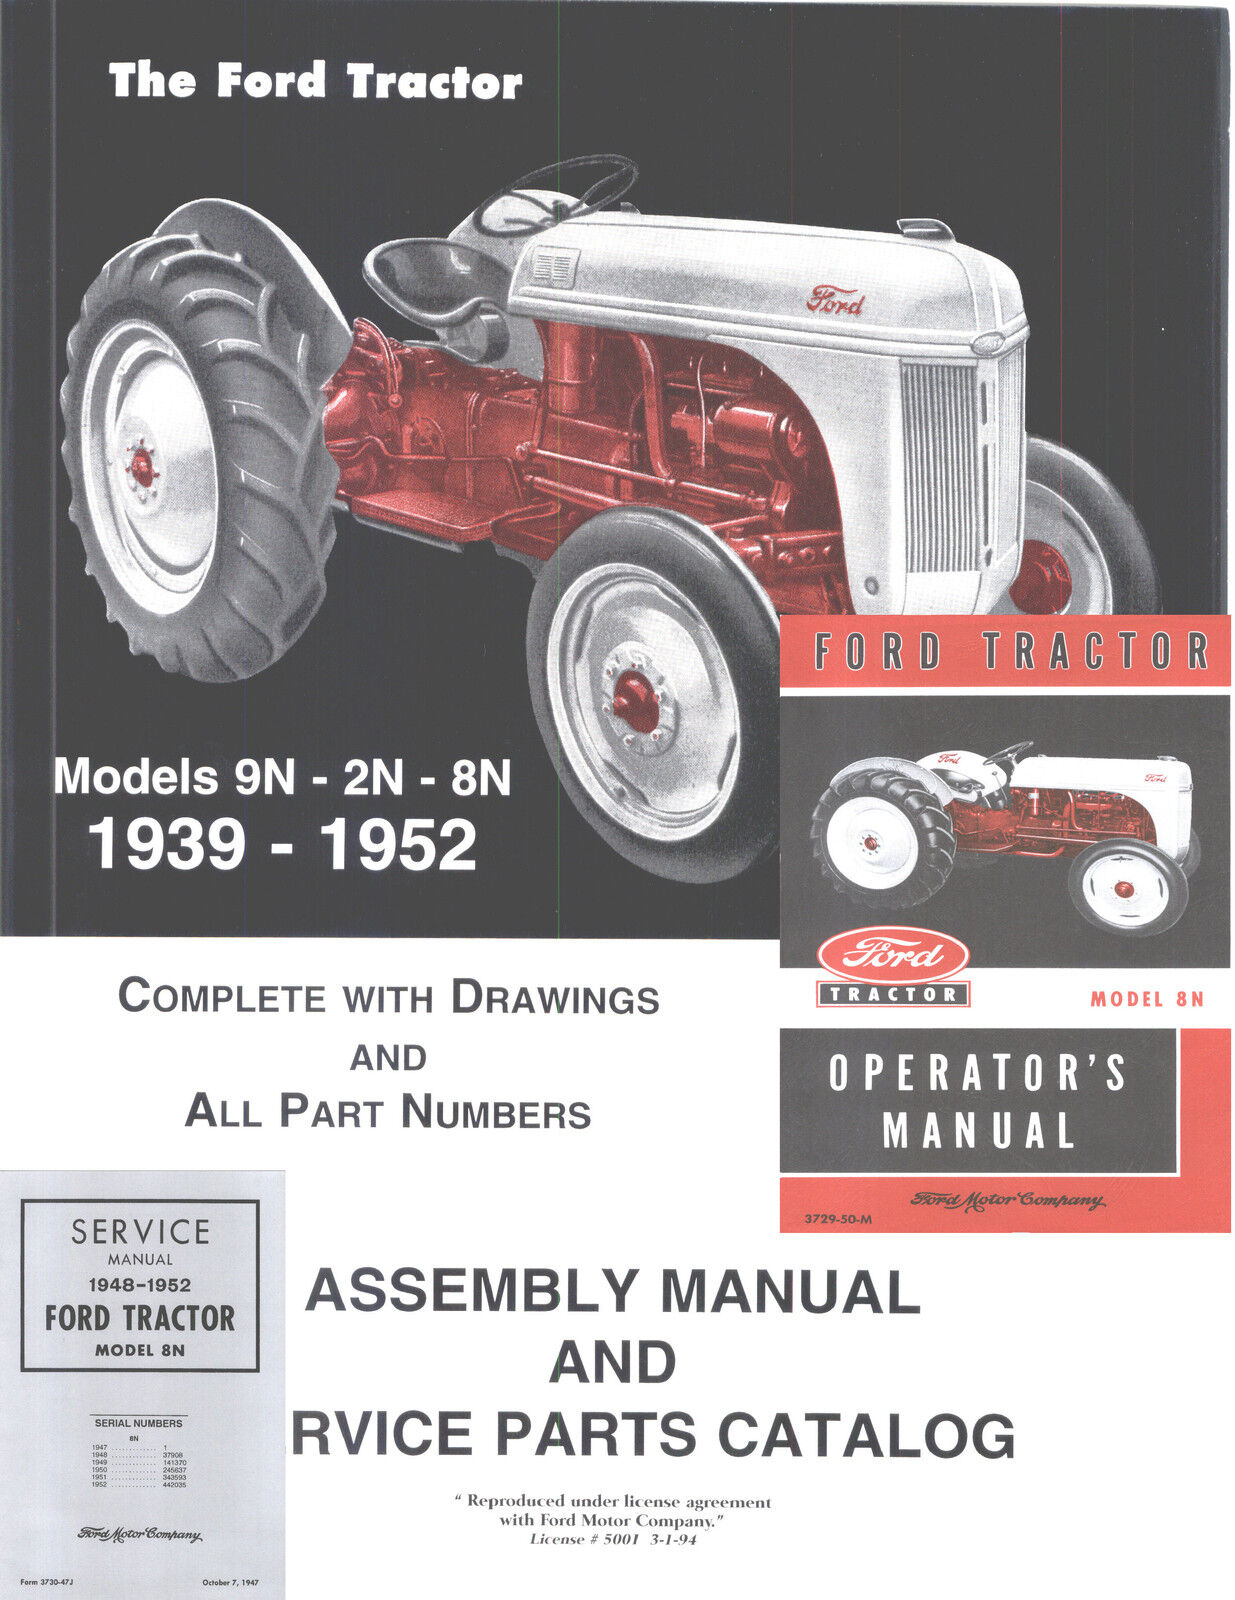 Owners Manual 8n Ford Tractor Today Guide Trends Sample 1949 2n Wiring Diagram 9n Service Repair Workshop Manuals